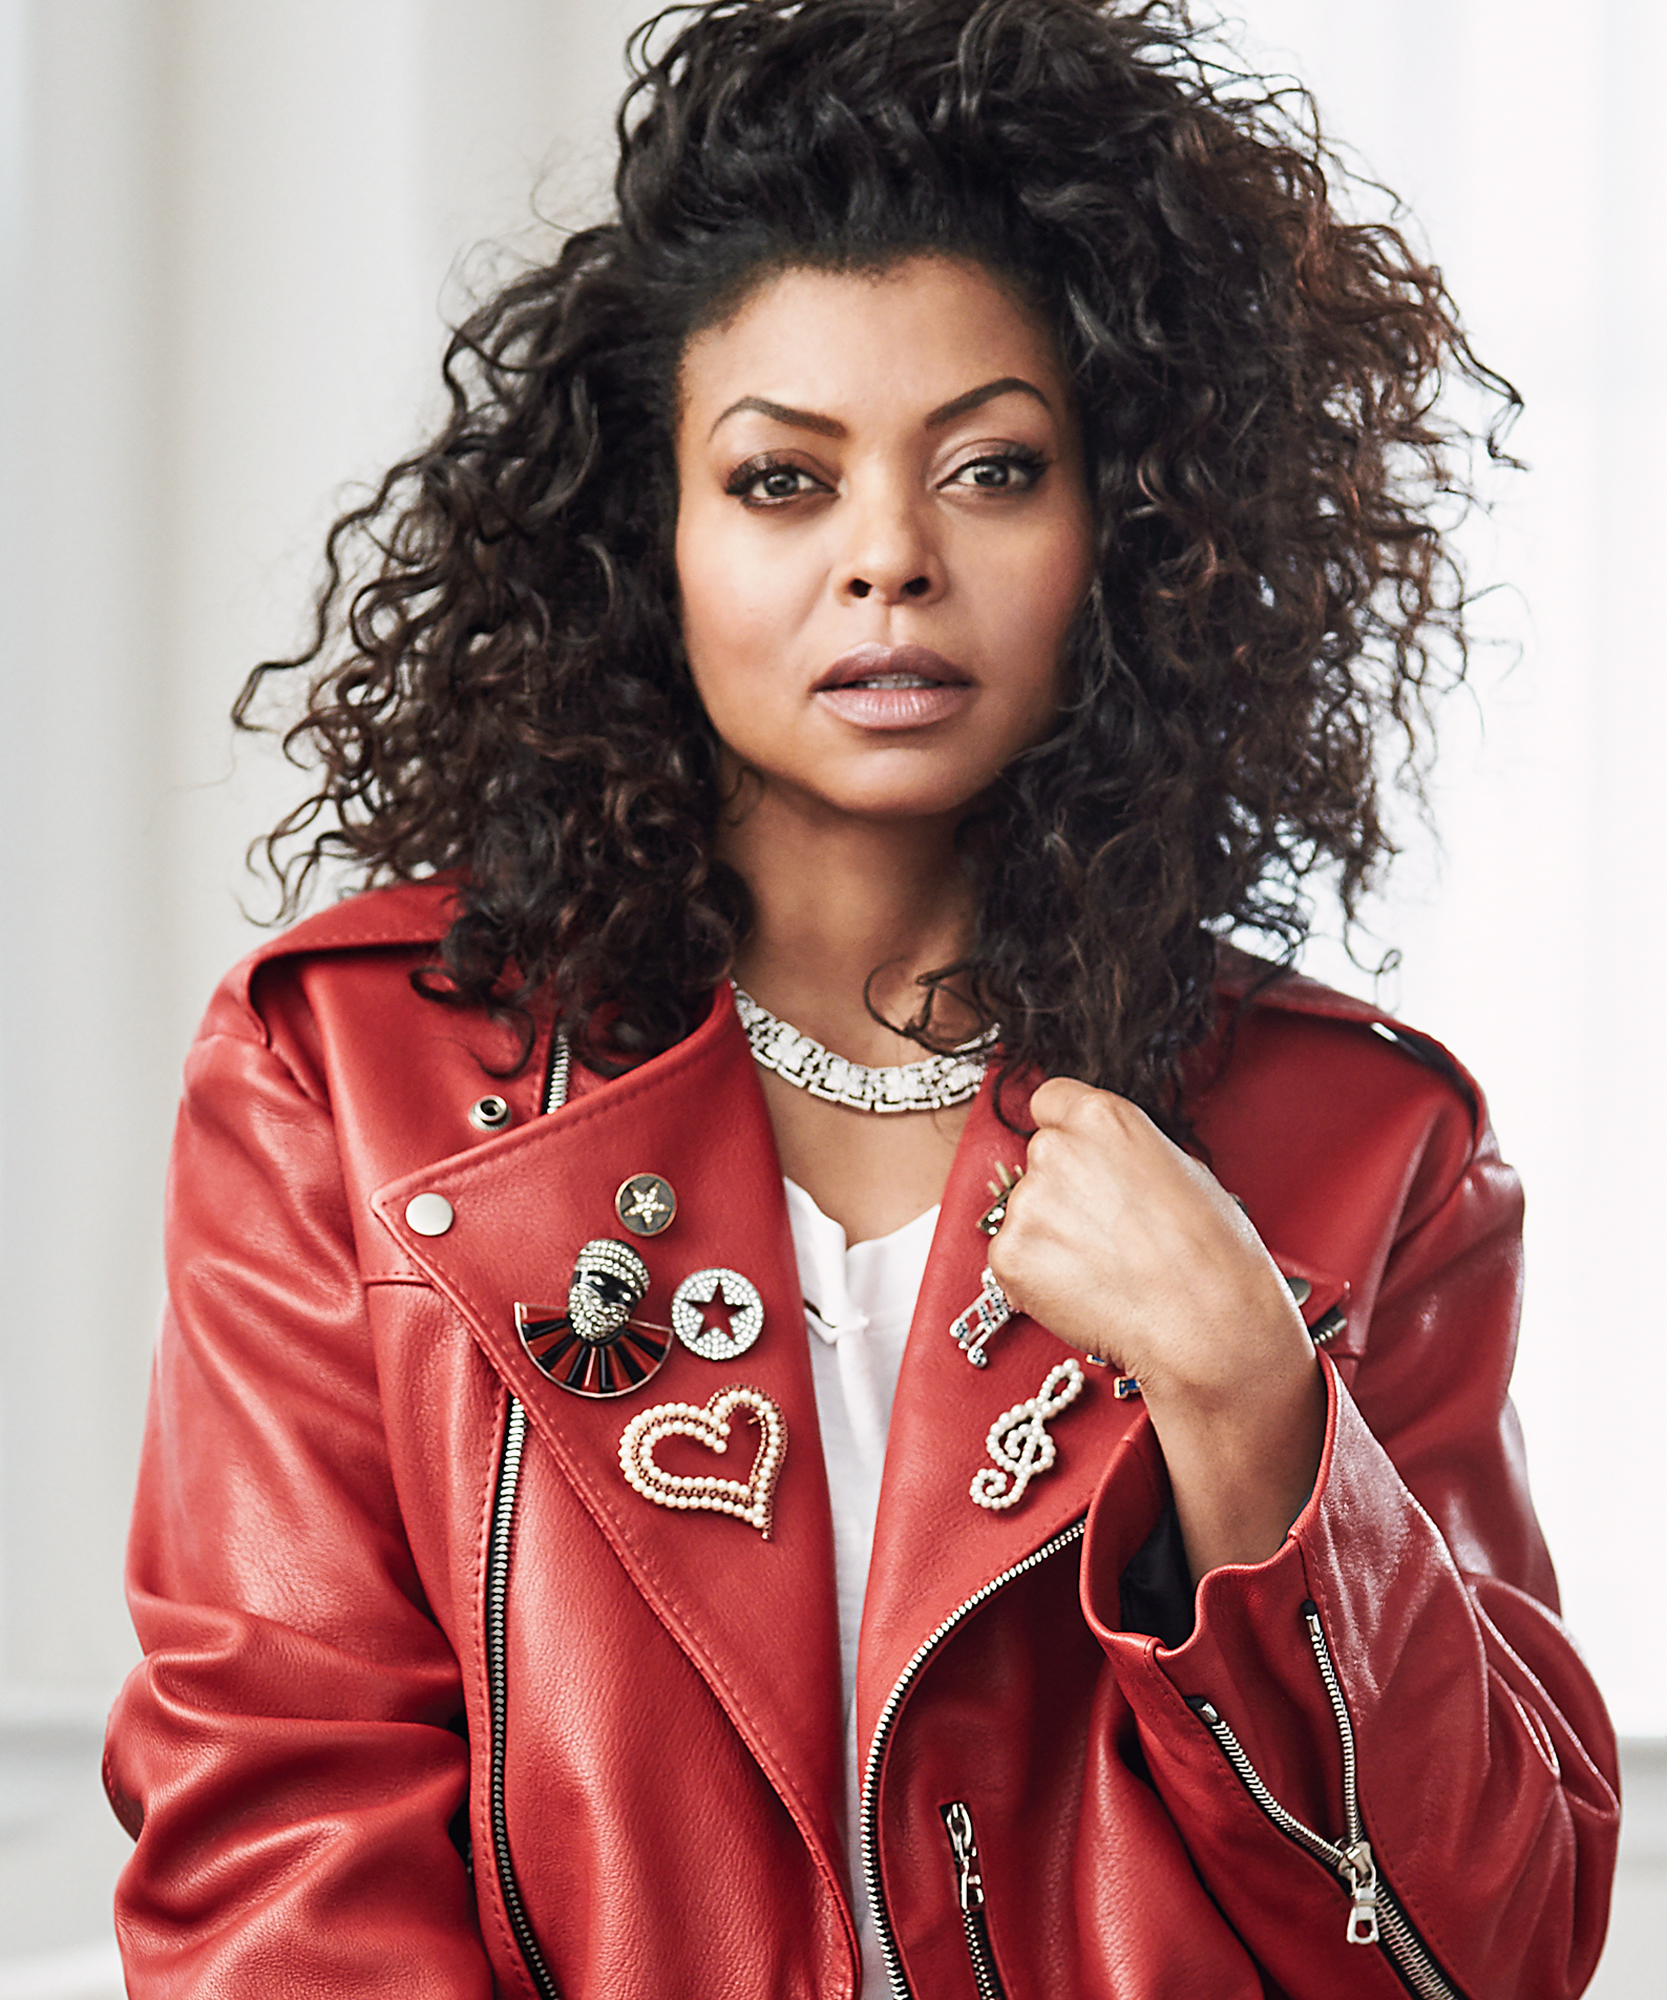 The 5 Beauty Products Taraji P. Henson Swears By